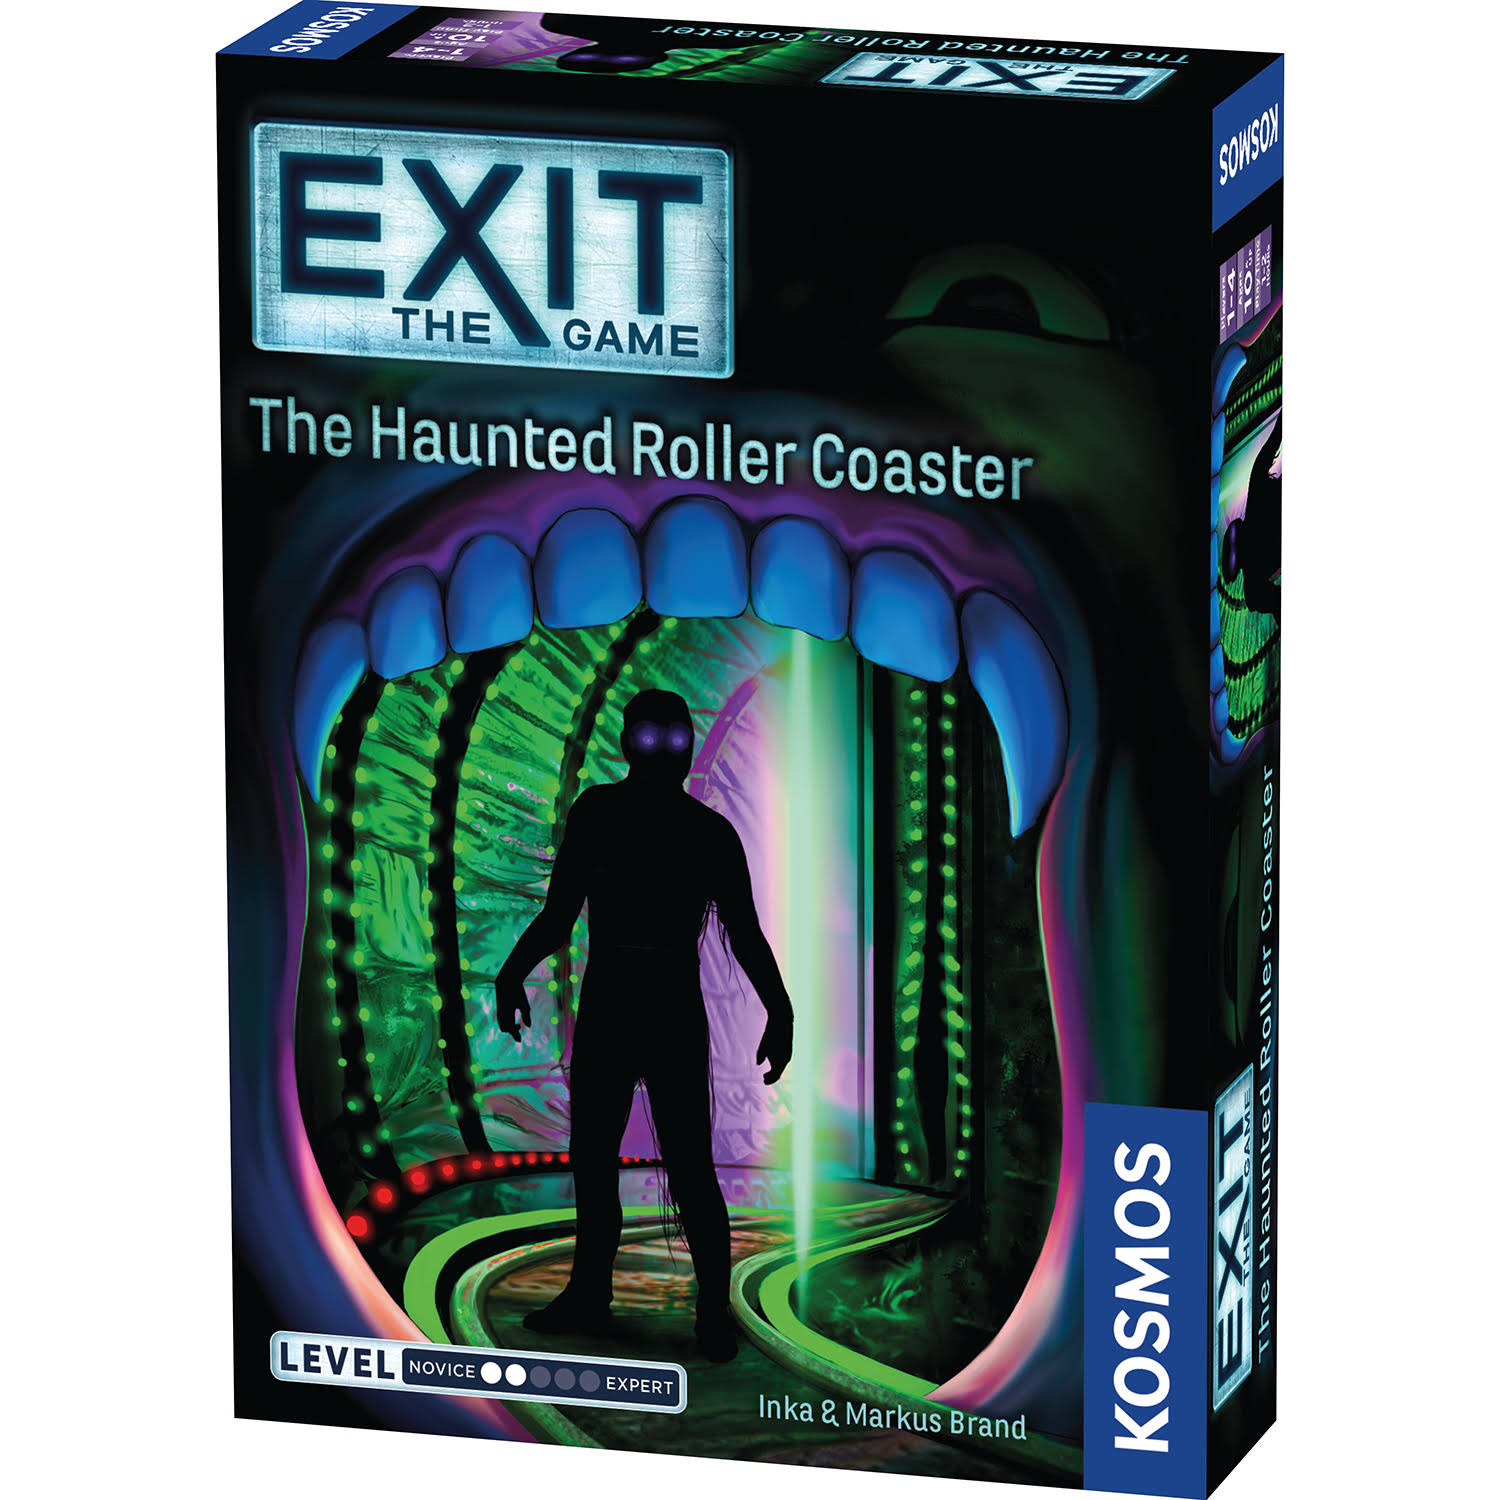 Exit: The Haunted Roller Coaster Board Games